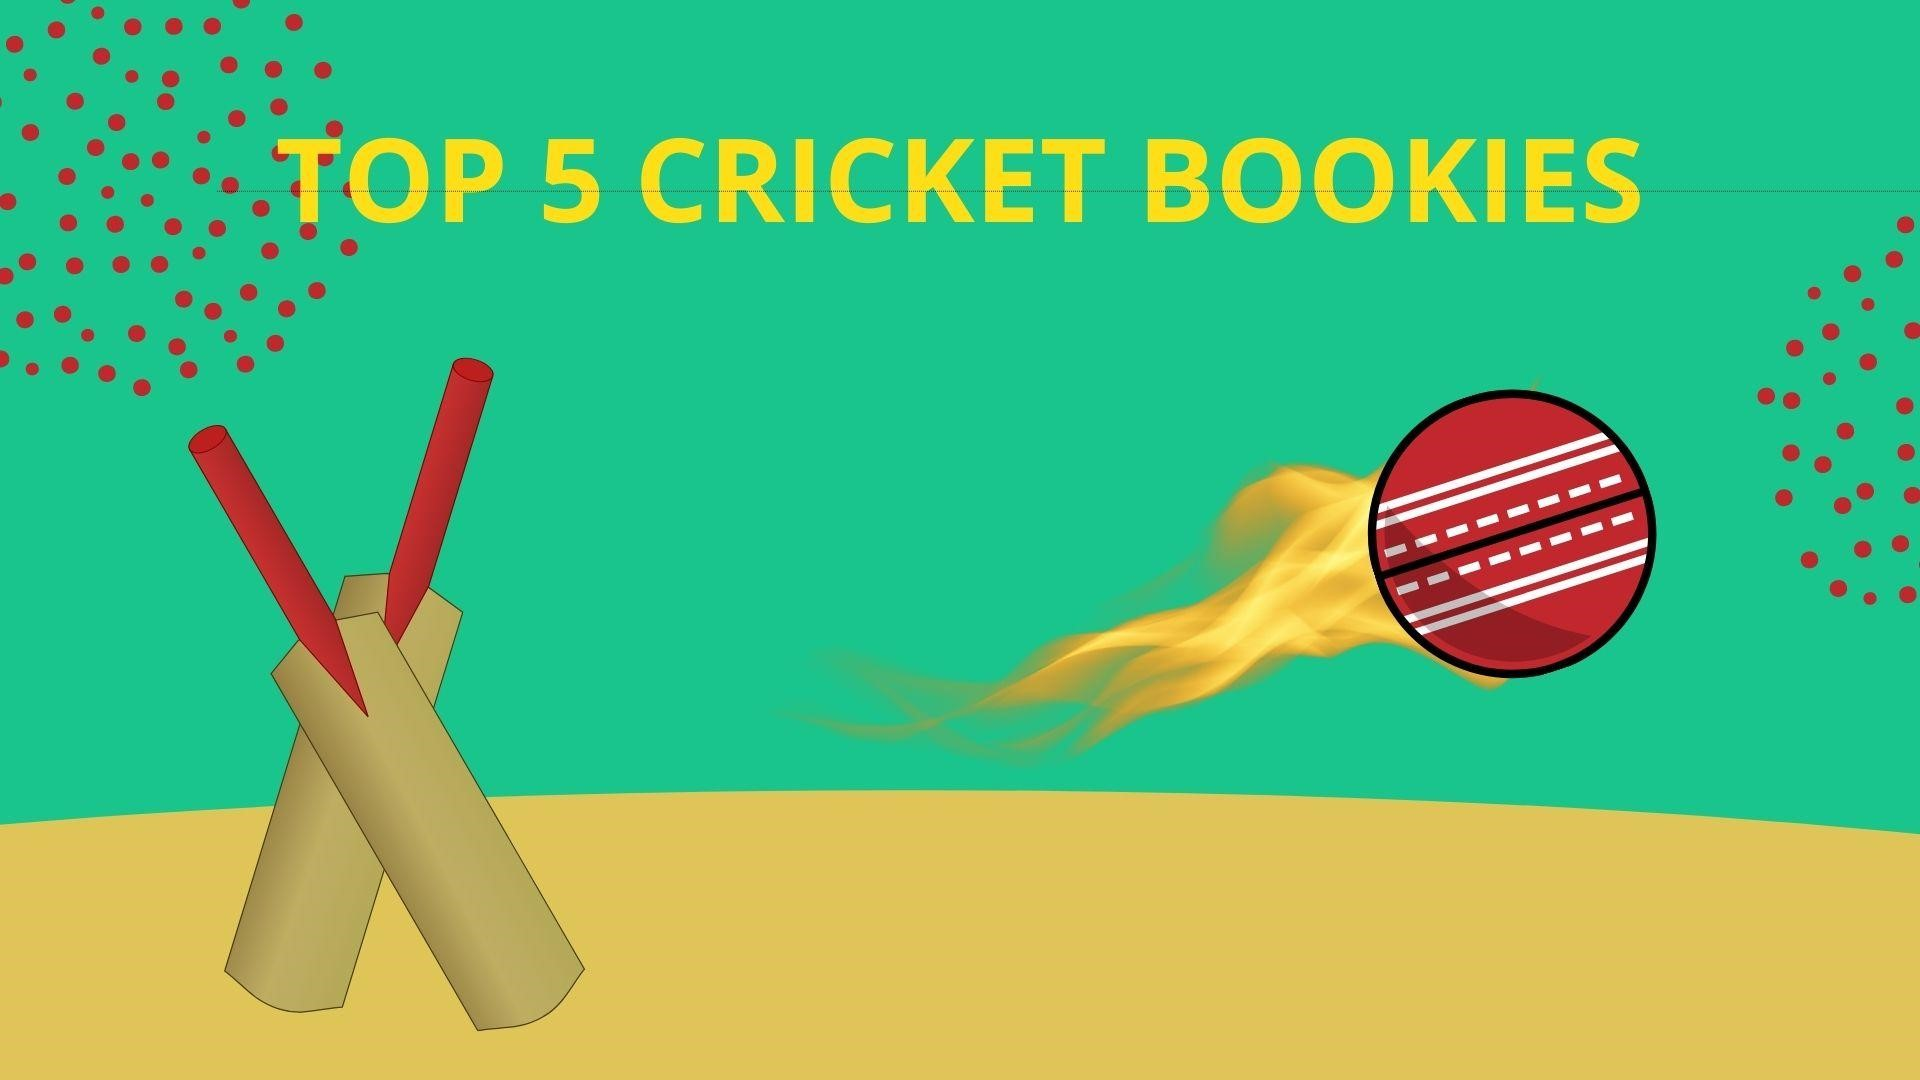 Cricket betting sites - How to choose the best bookmaker in India? 1